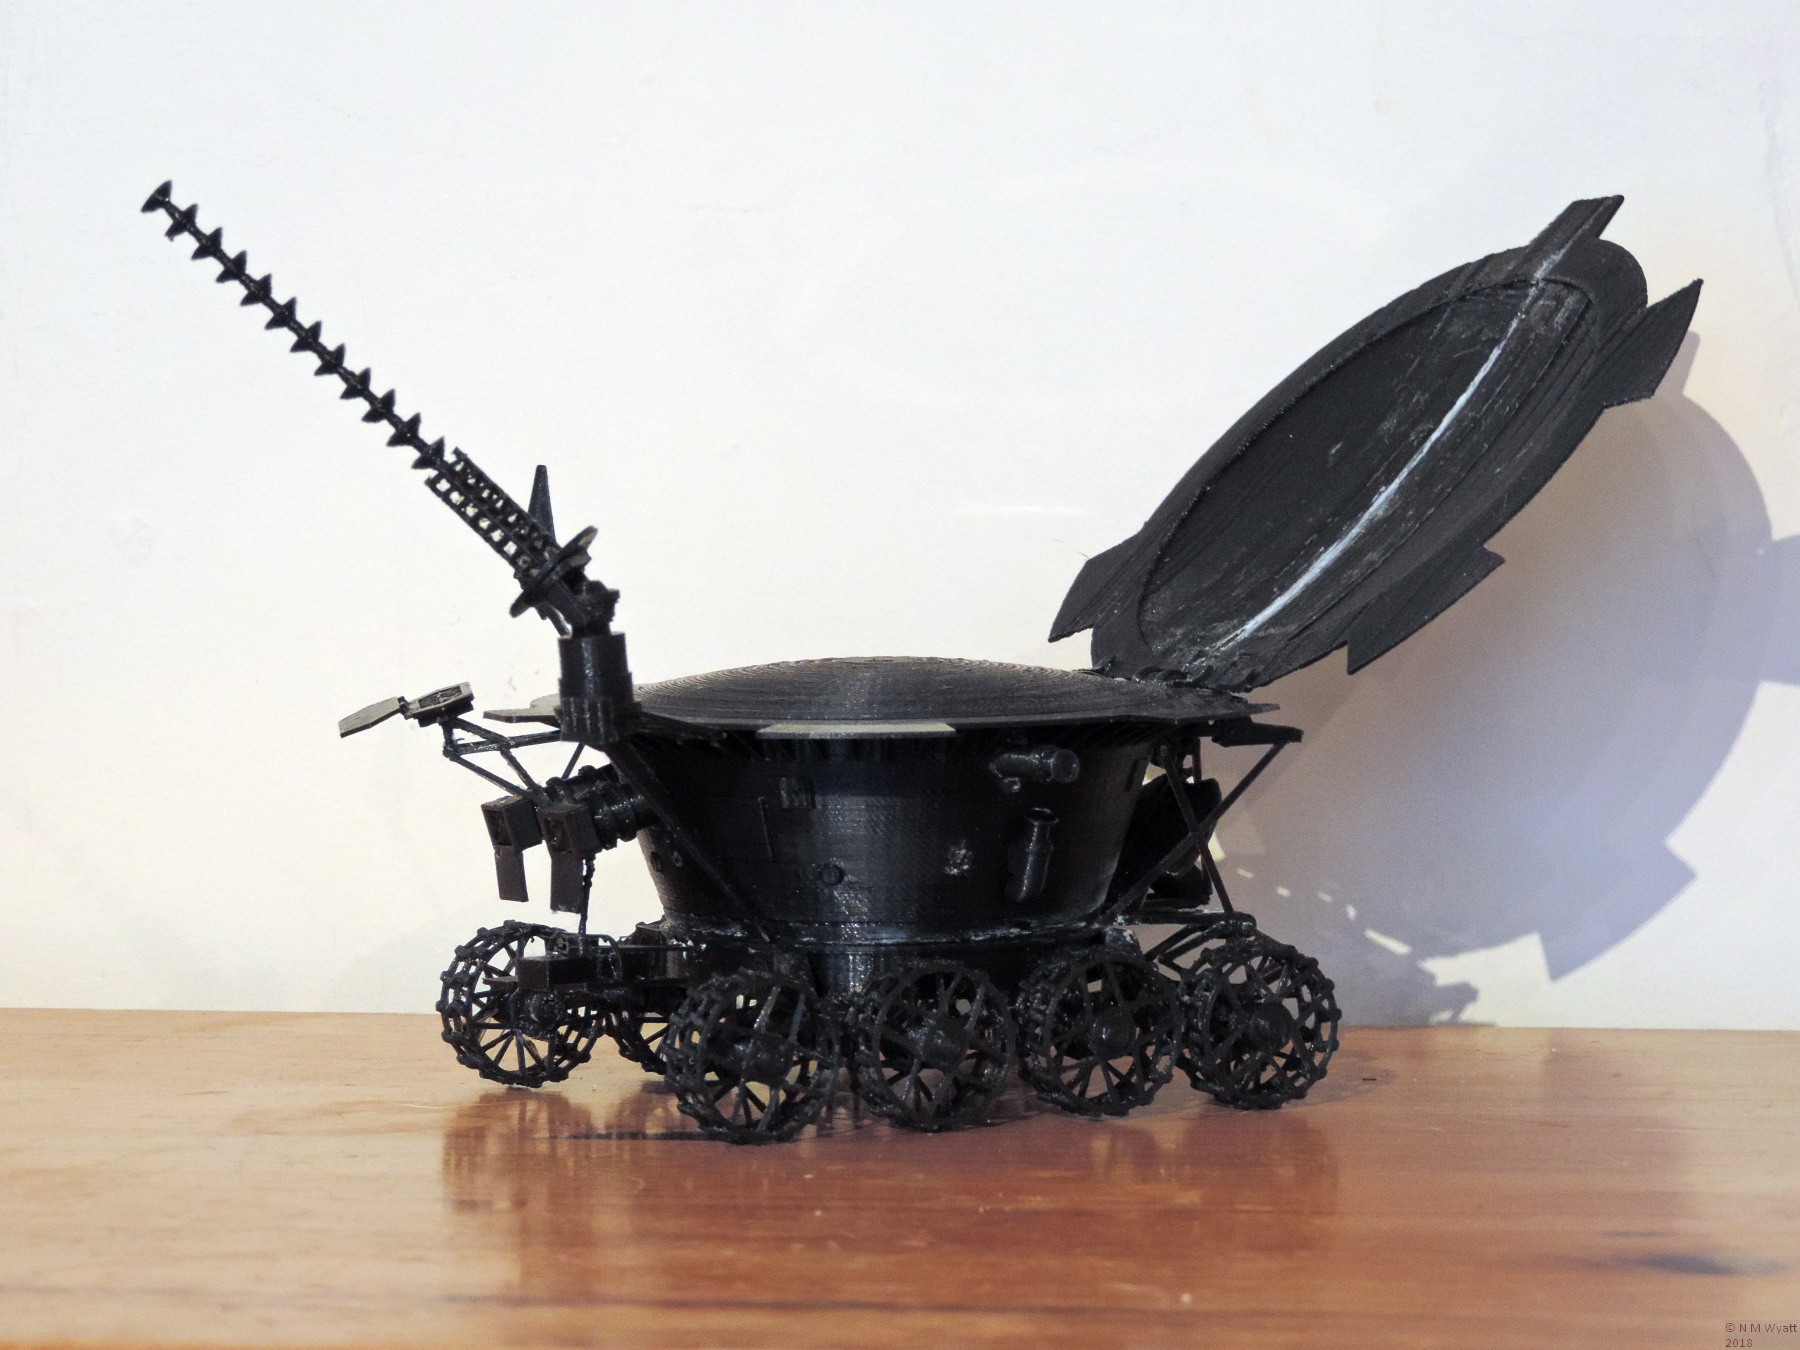 £D printed model of Lunokhod 1